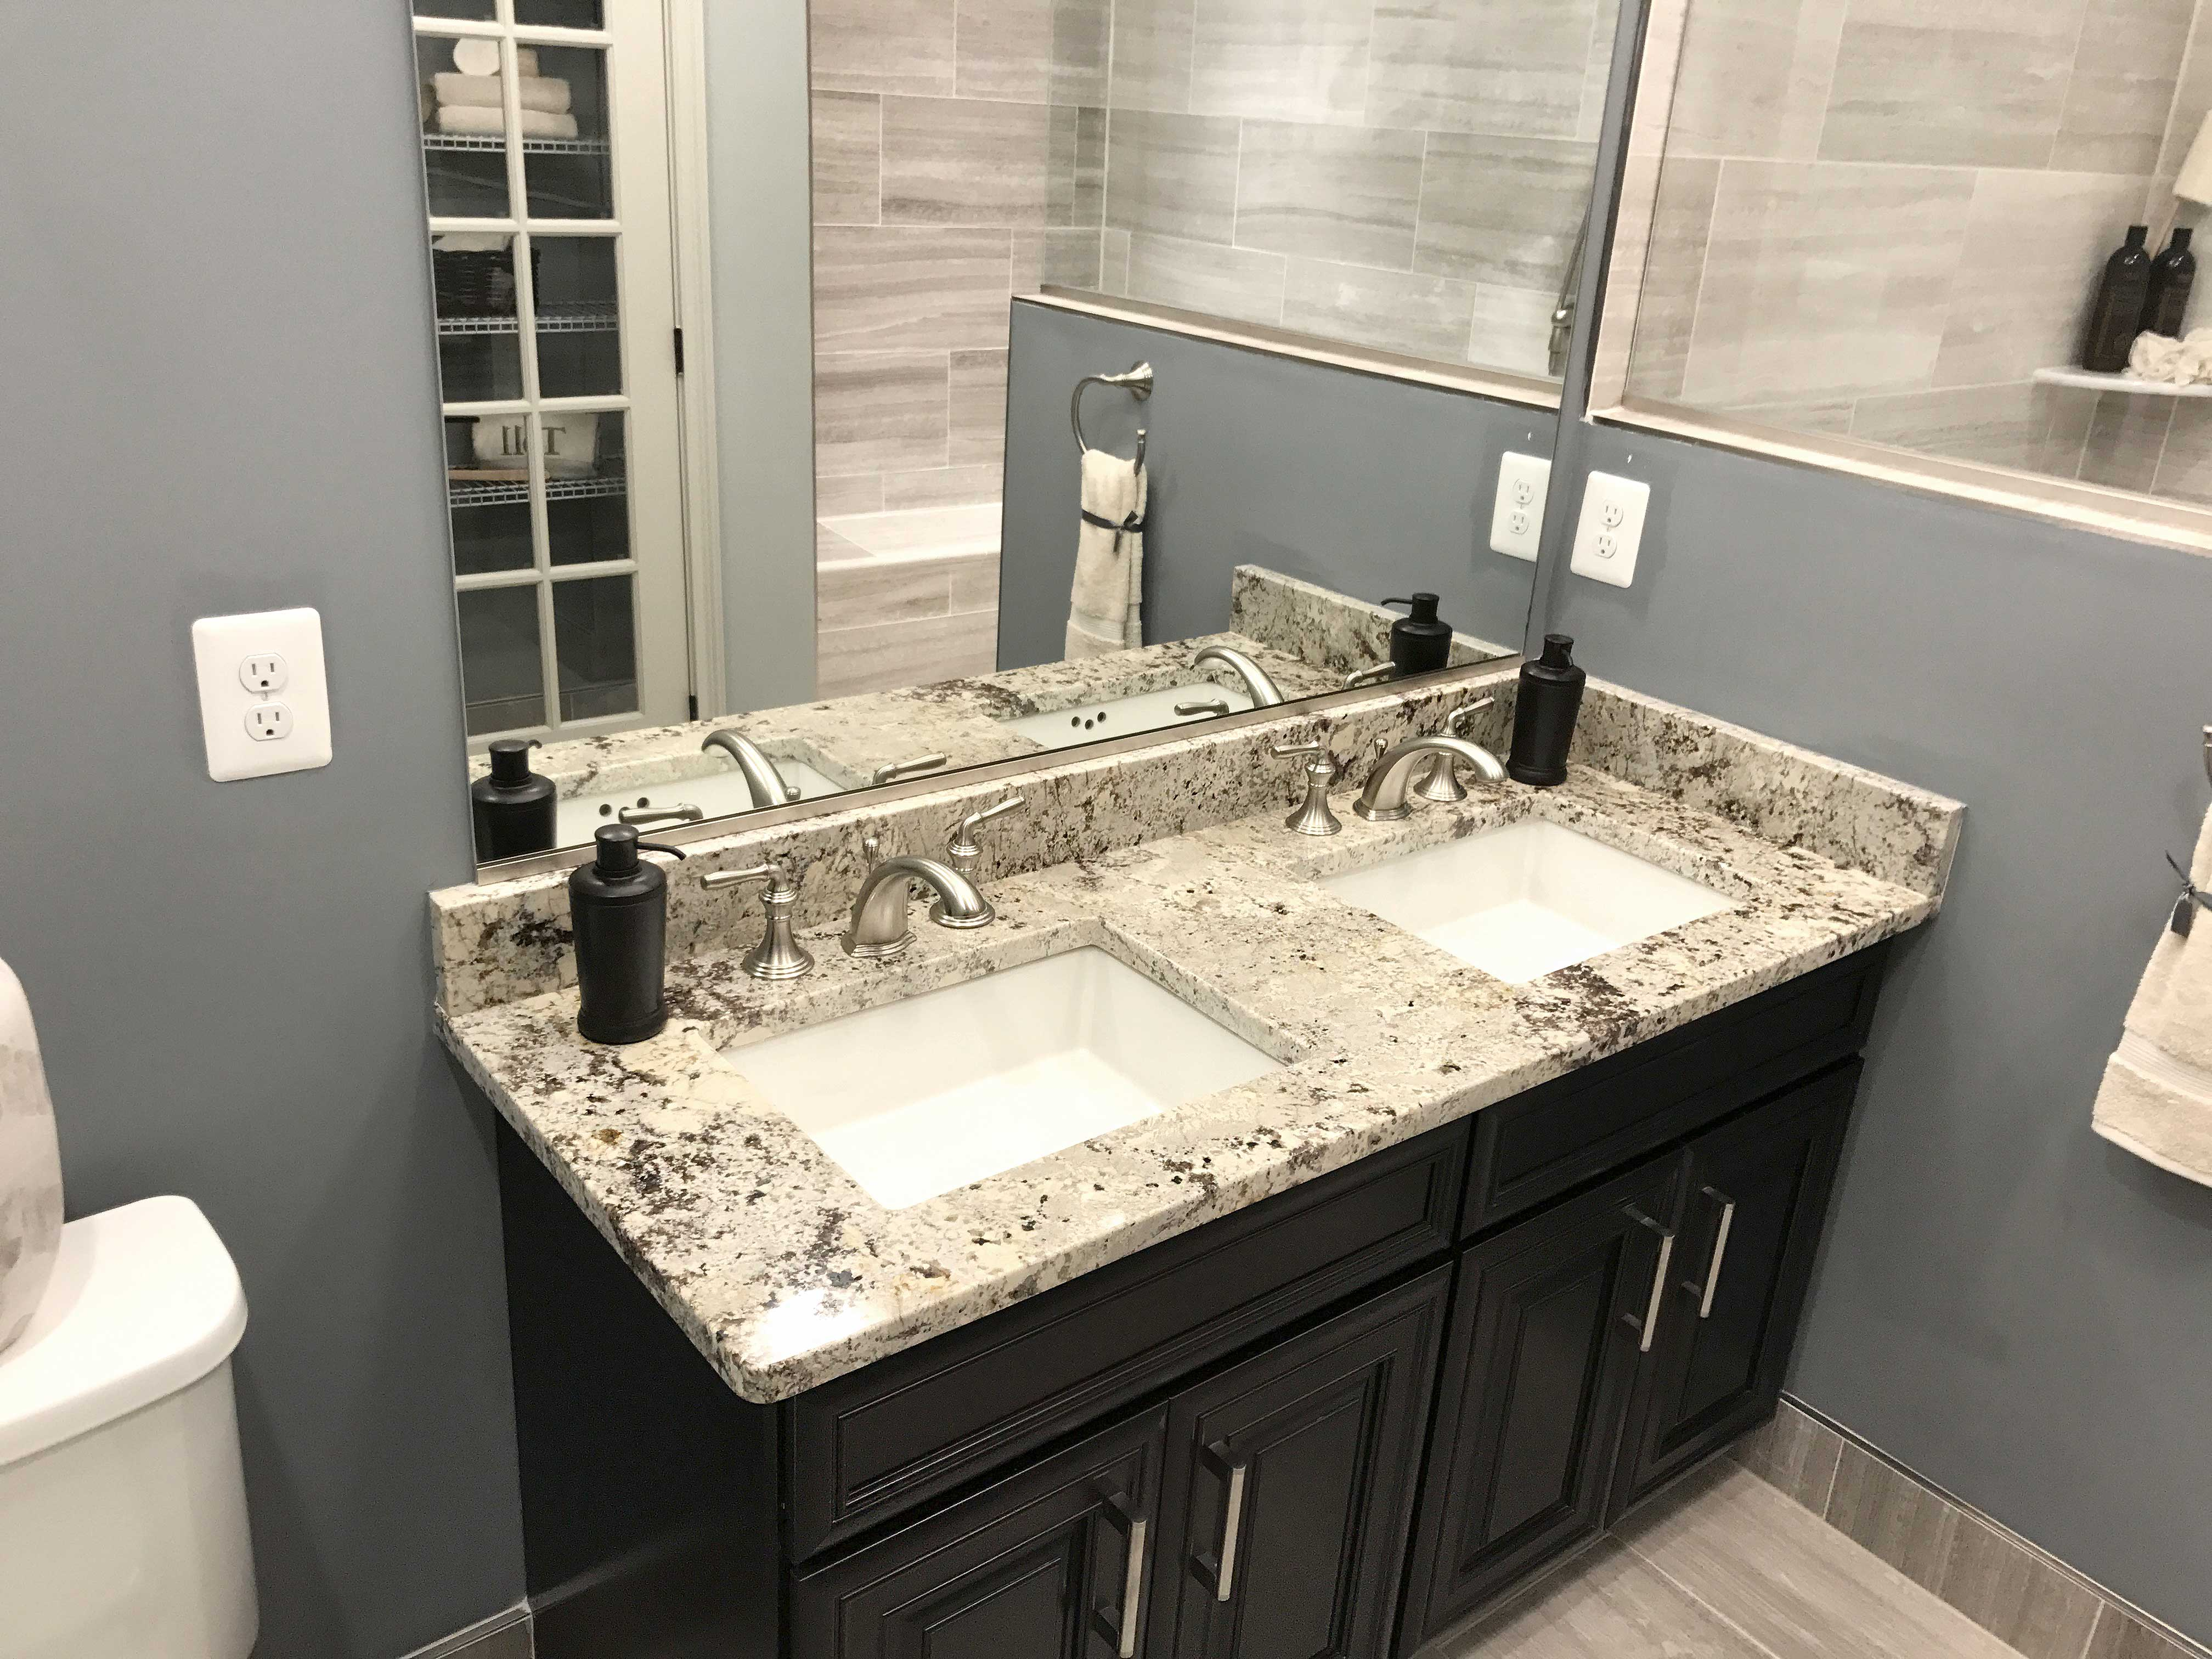 Alaska White Bathroom Vanities Granite Countertops Quartz Countertops Best Quality Kitchen And Bathroom Countertops Sky Marble And Granite Located In Sterling Virginia Va